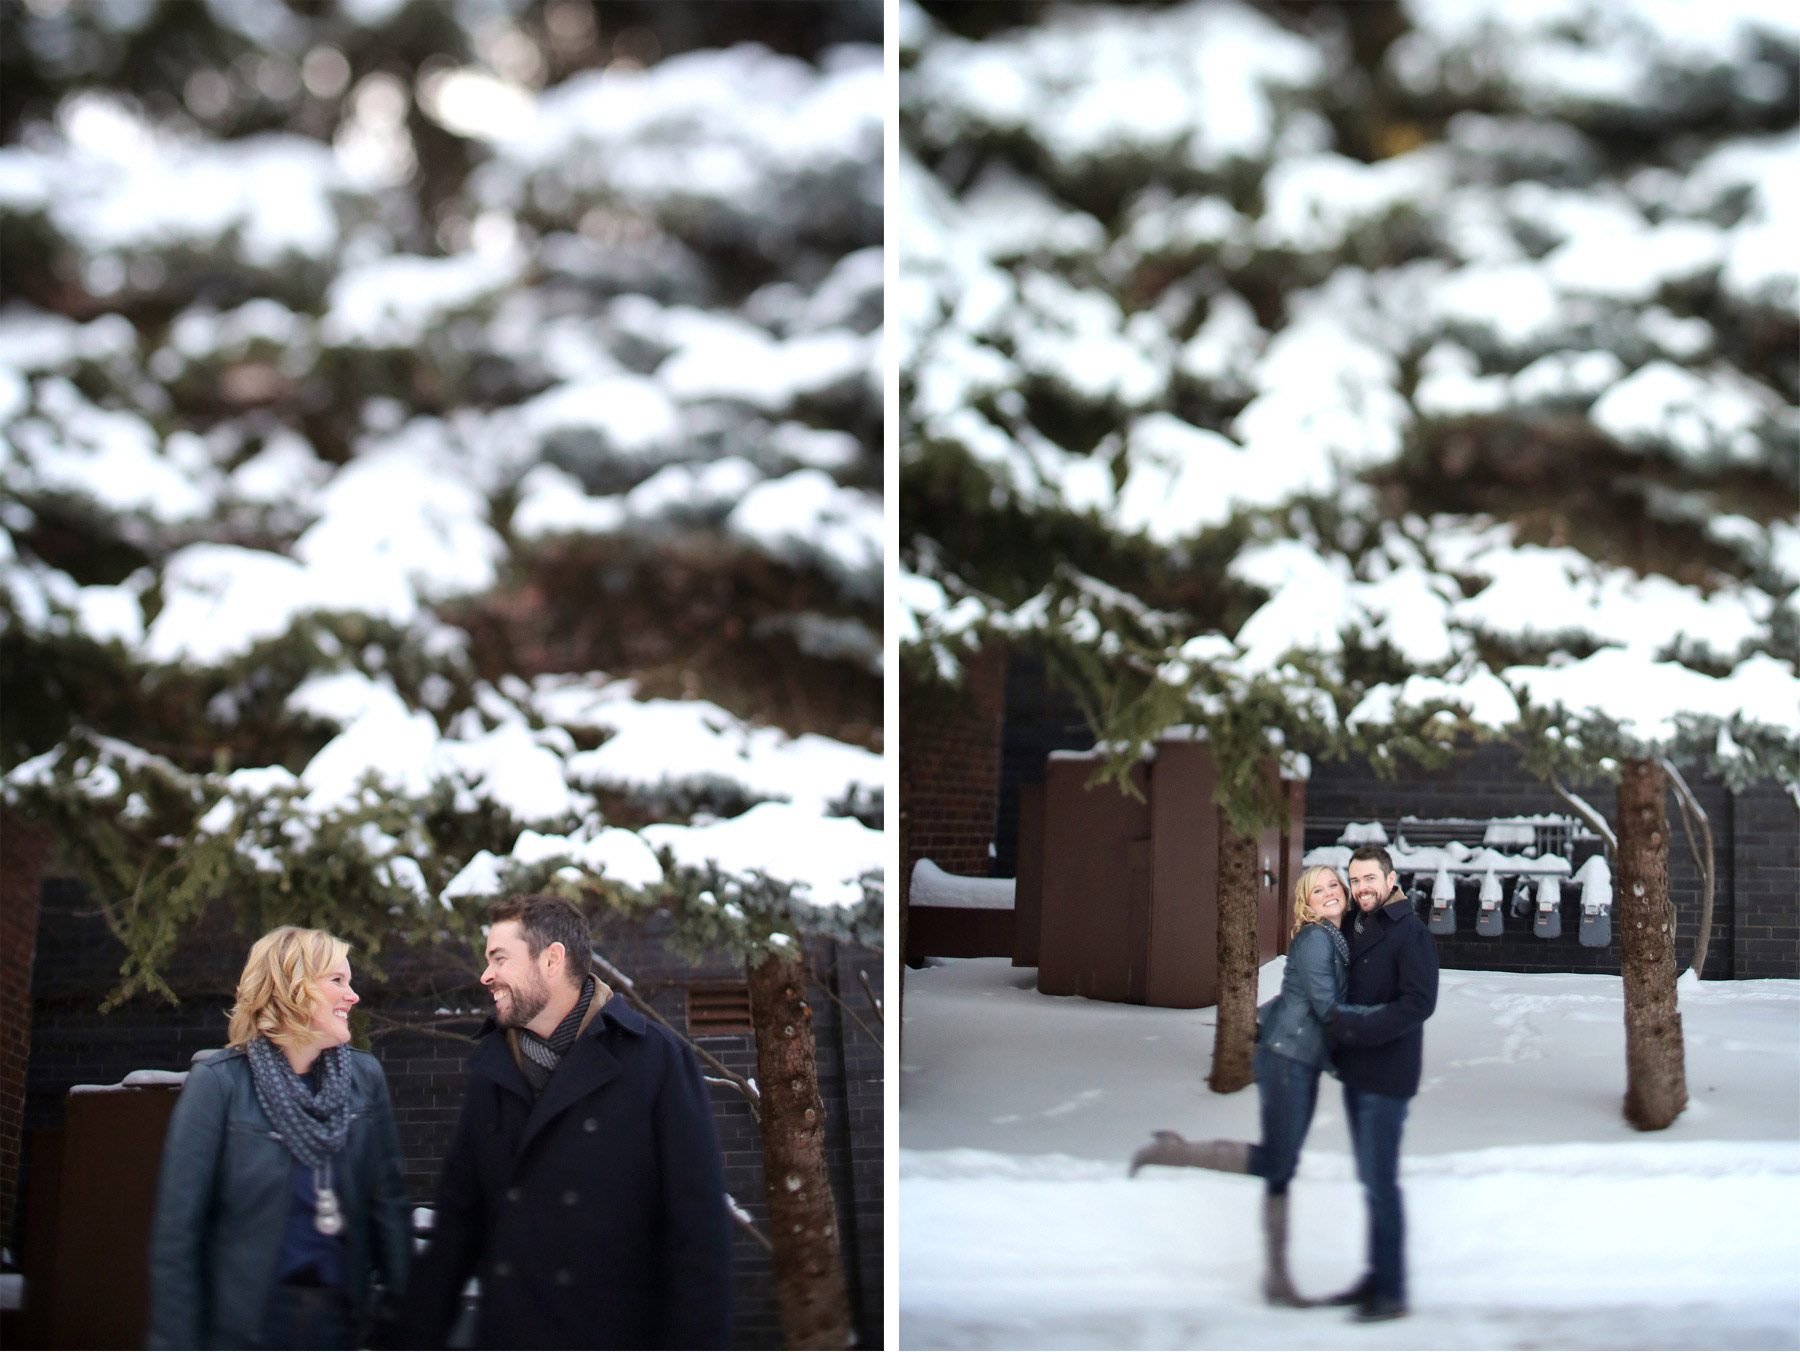 01-Edina-Minnesota-Wedding-Photographer-by-Andrew-Vick-Photography-Winter-Engagement-Bride-Groom-Snow-Heather-and-Rob.jpg